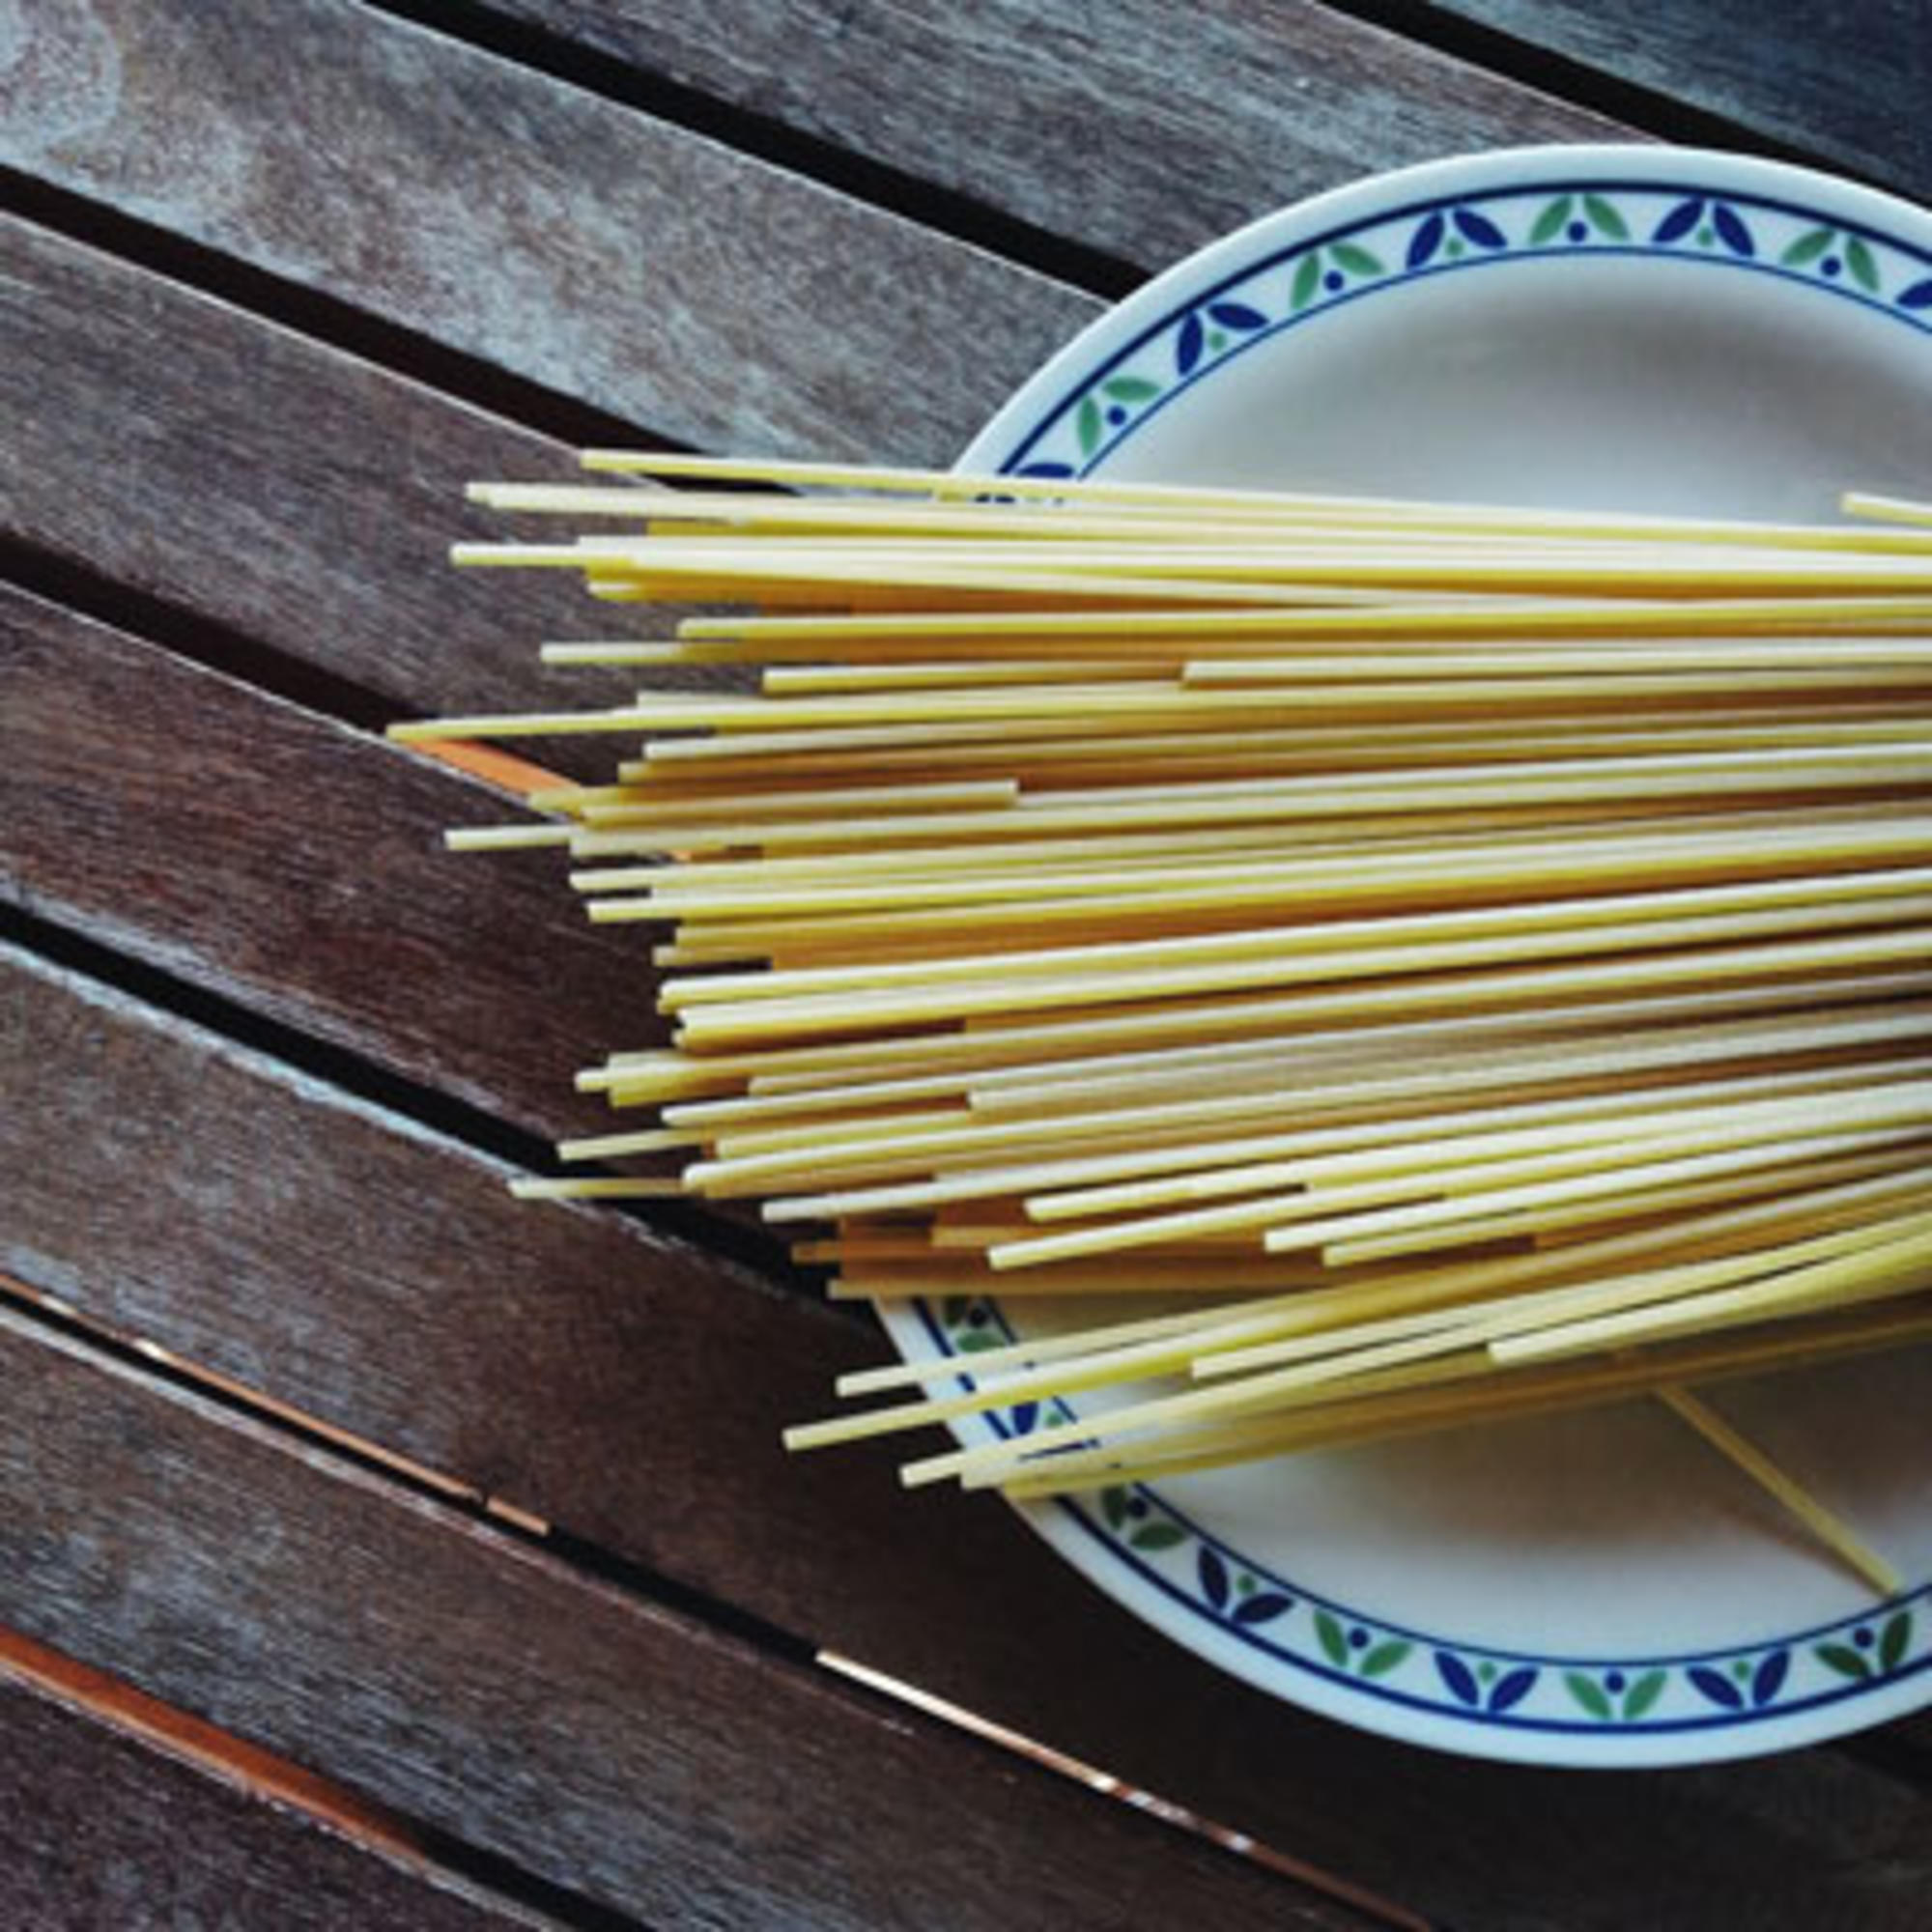 Pasta recipes for dialysis patients